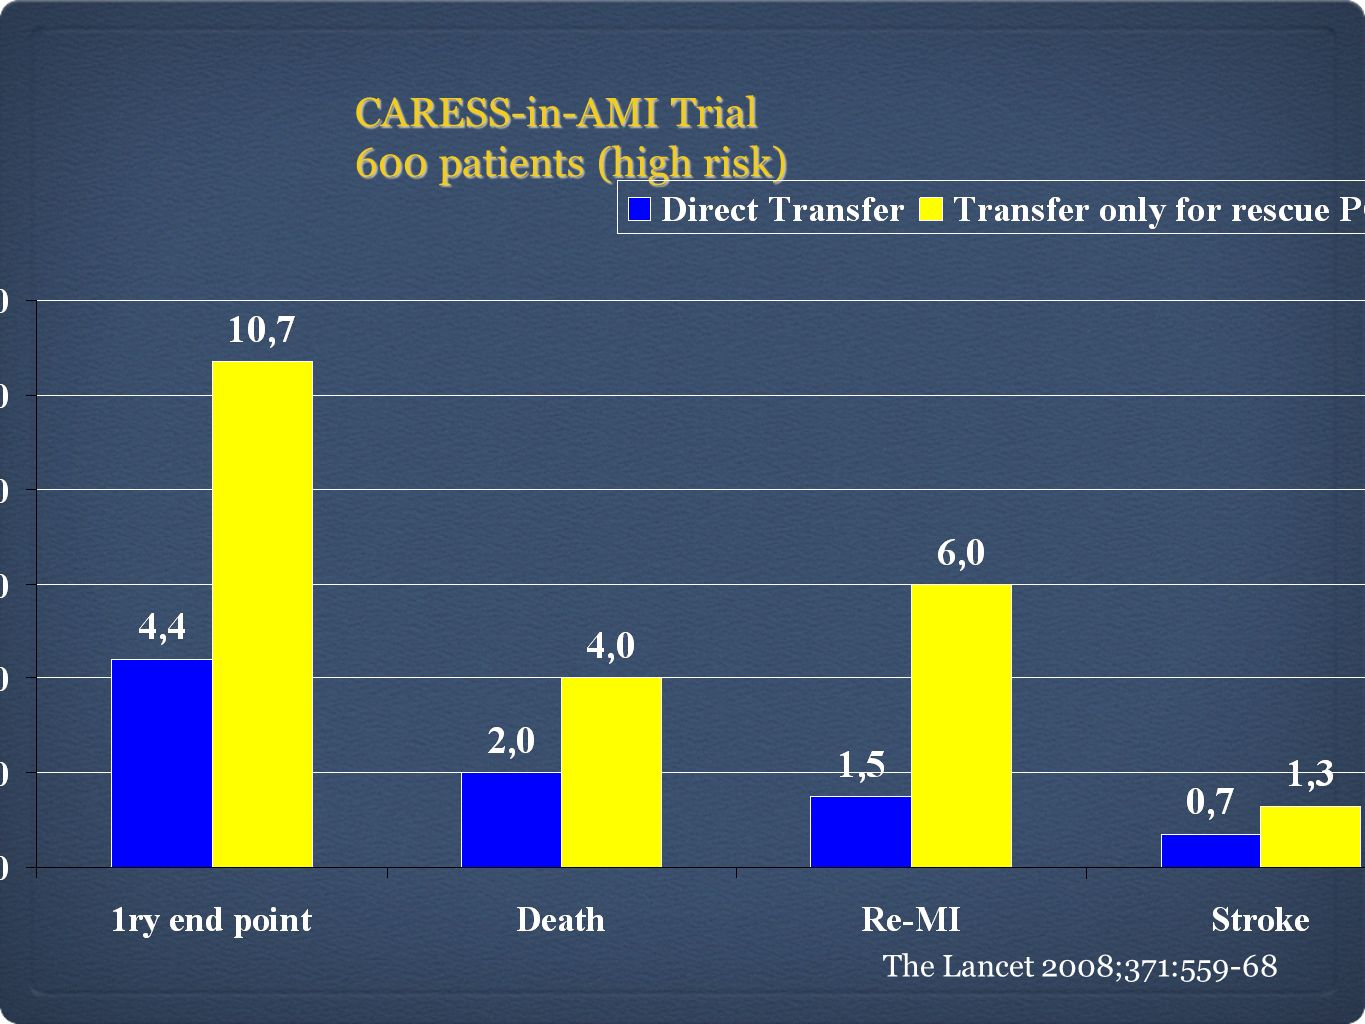 CARESS-in-AMI Trial 600 patients (high risk) The Lancet 2008;371:559-68